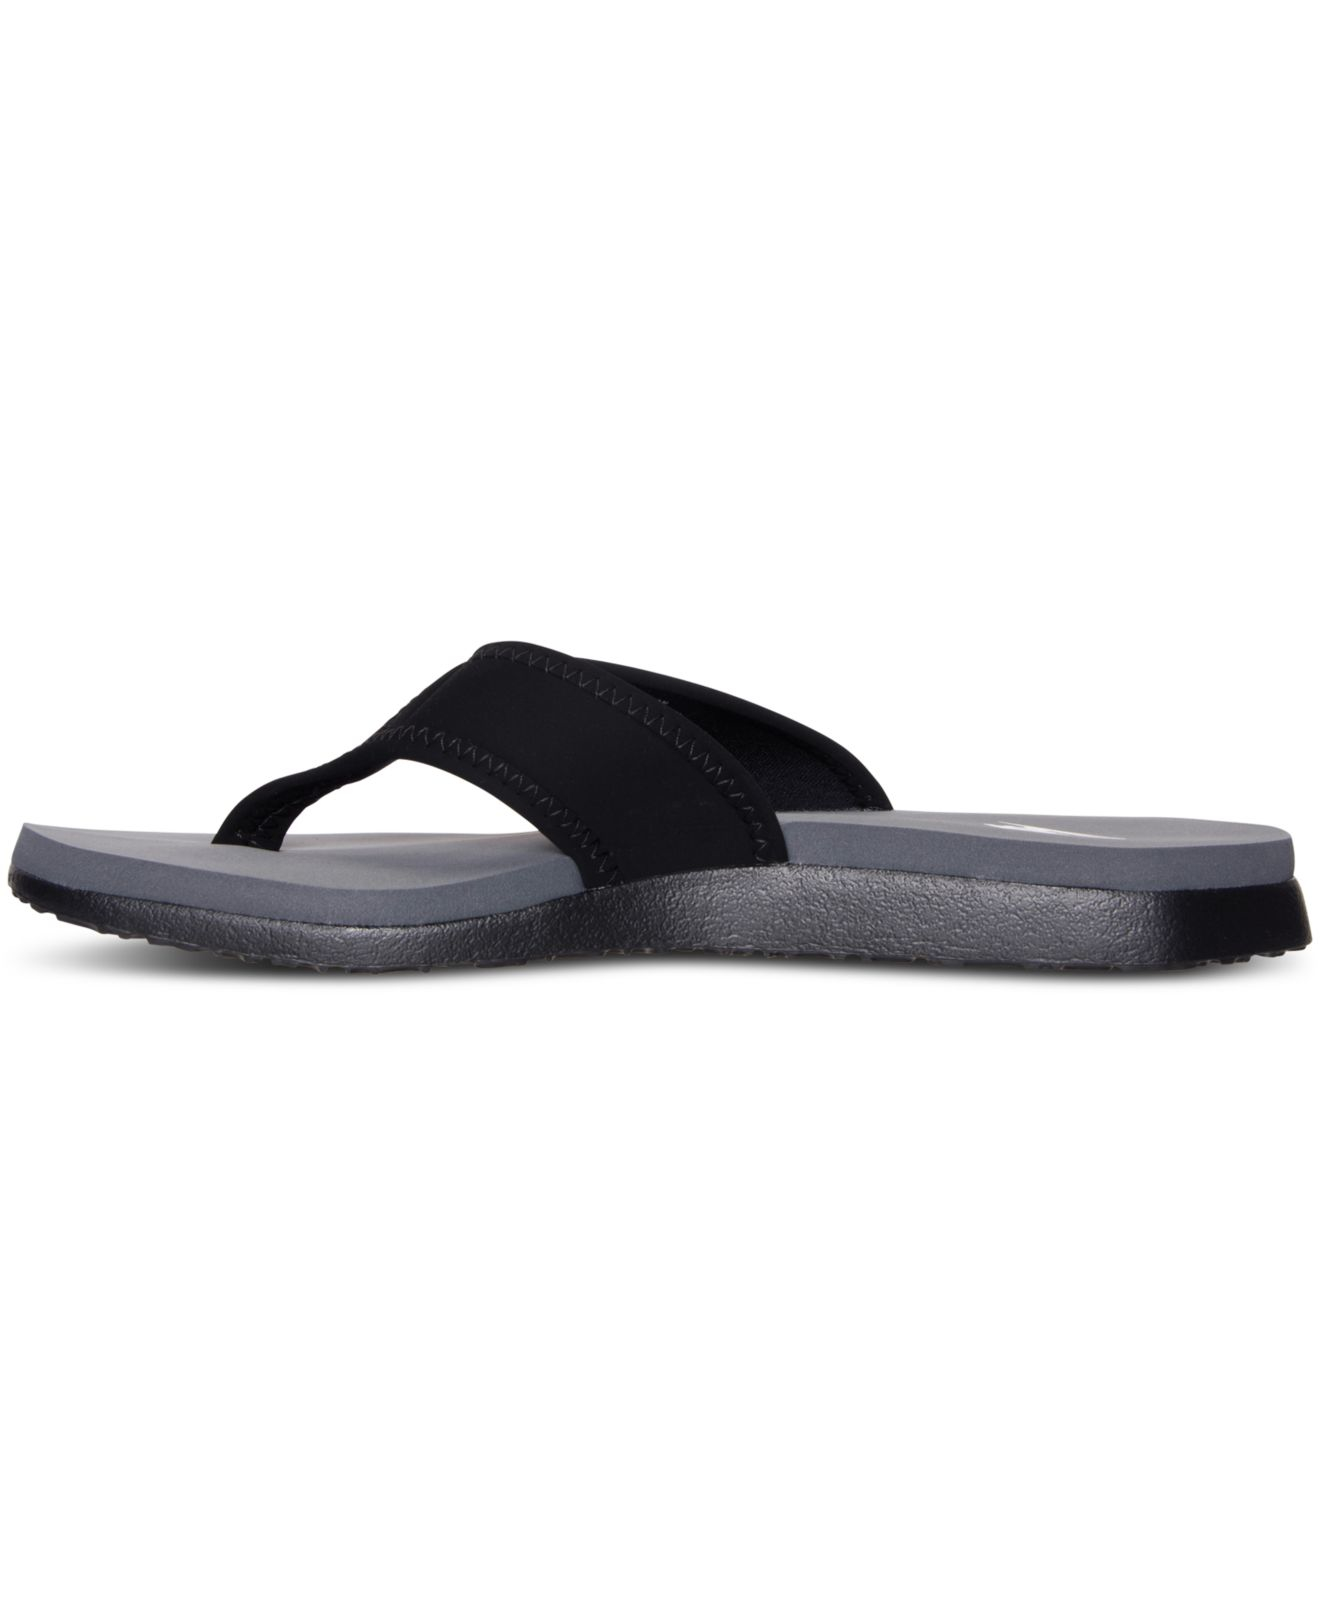 b9c717c4c8a551 Nike - Black Men s Celso Plus Thong Sandals From Finish Line for Men - Lyst